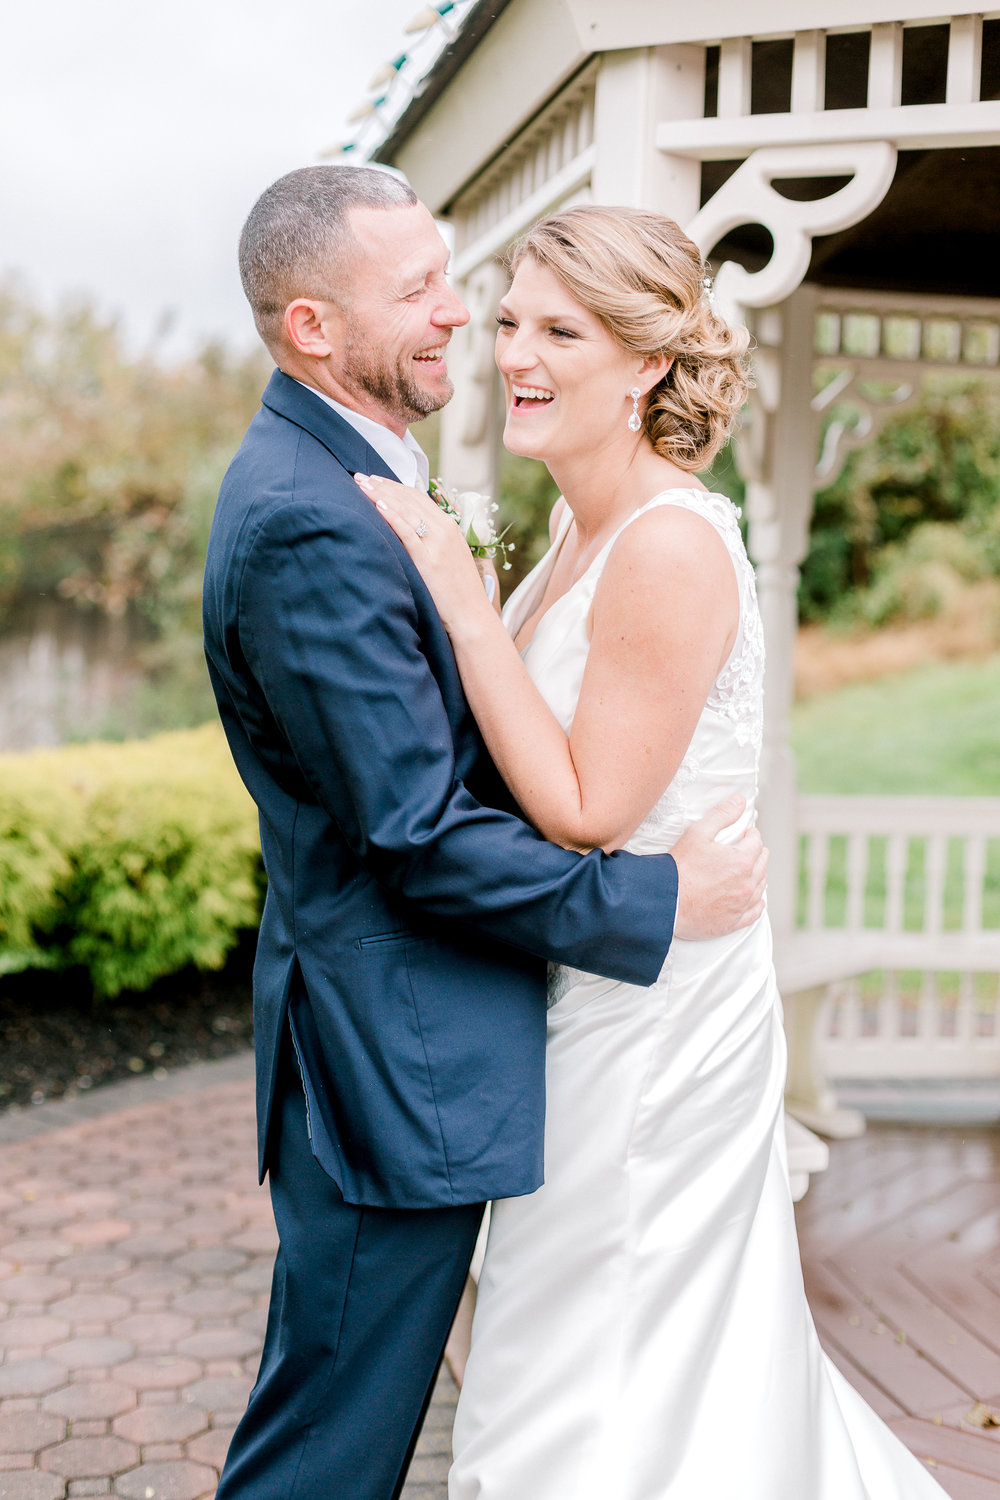 Pennsylvania October Fall Lehigh Valley wedding and lifestyle photographer Lytle Photo Co (45 of 167).jpg